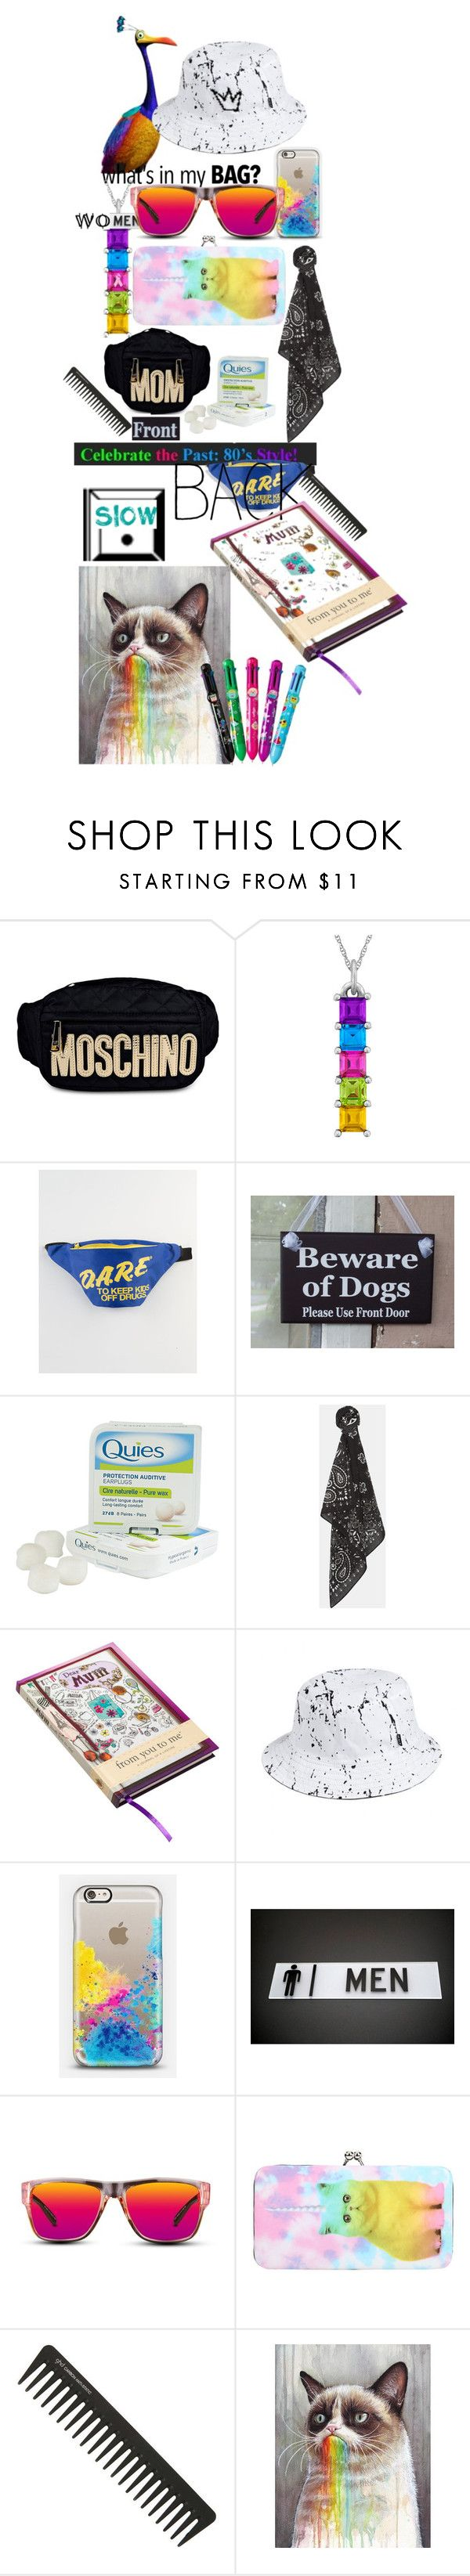 """""""meaningful bird"""" by lerp ❤ liked on Polyvore featuring Moschino, Kevin Jewelers, Extreme 80s, Caswell-Massey, MANGO, HUF, Casetify, GlassesUSA, GHD and women's clothing"""